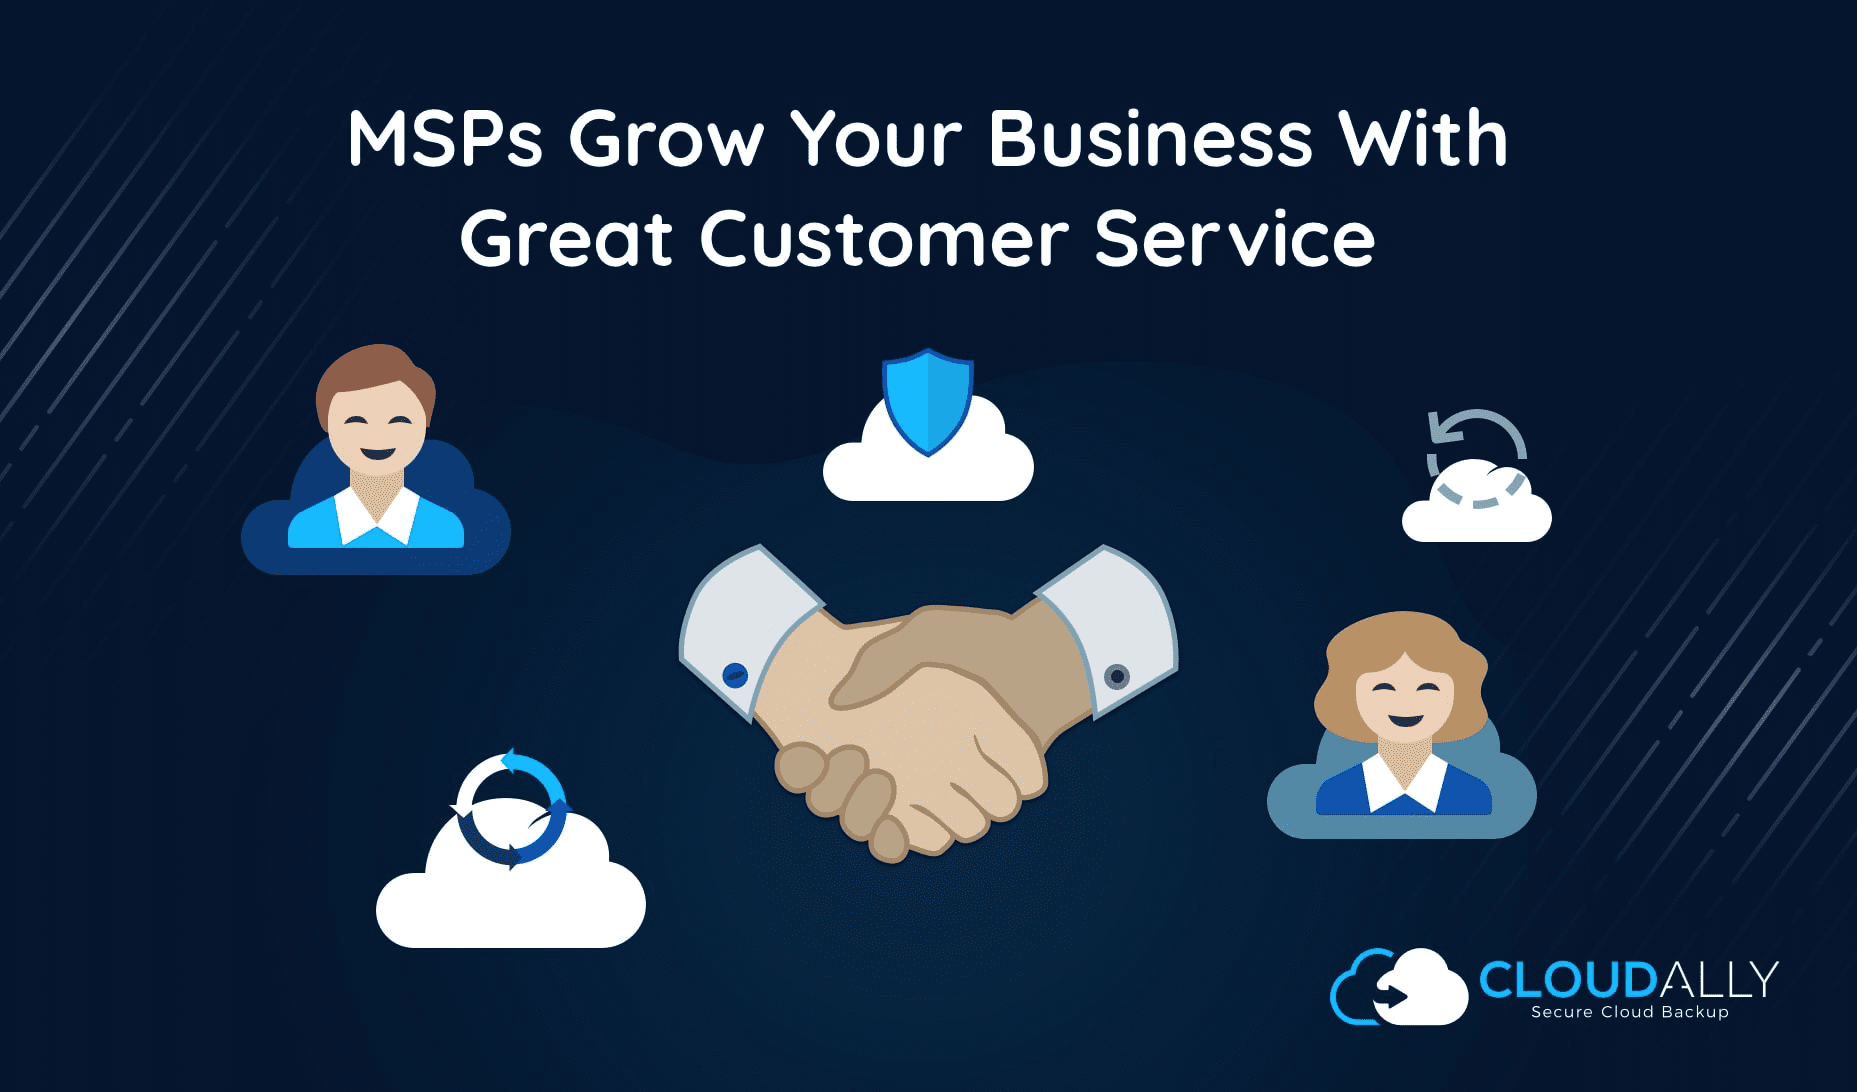 msps grow your business with great customer service/support